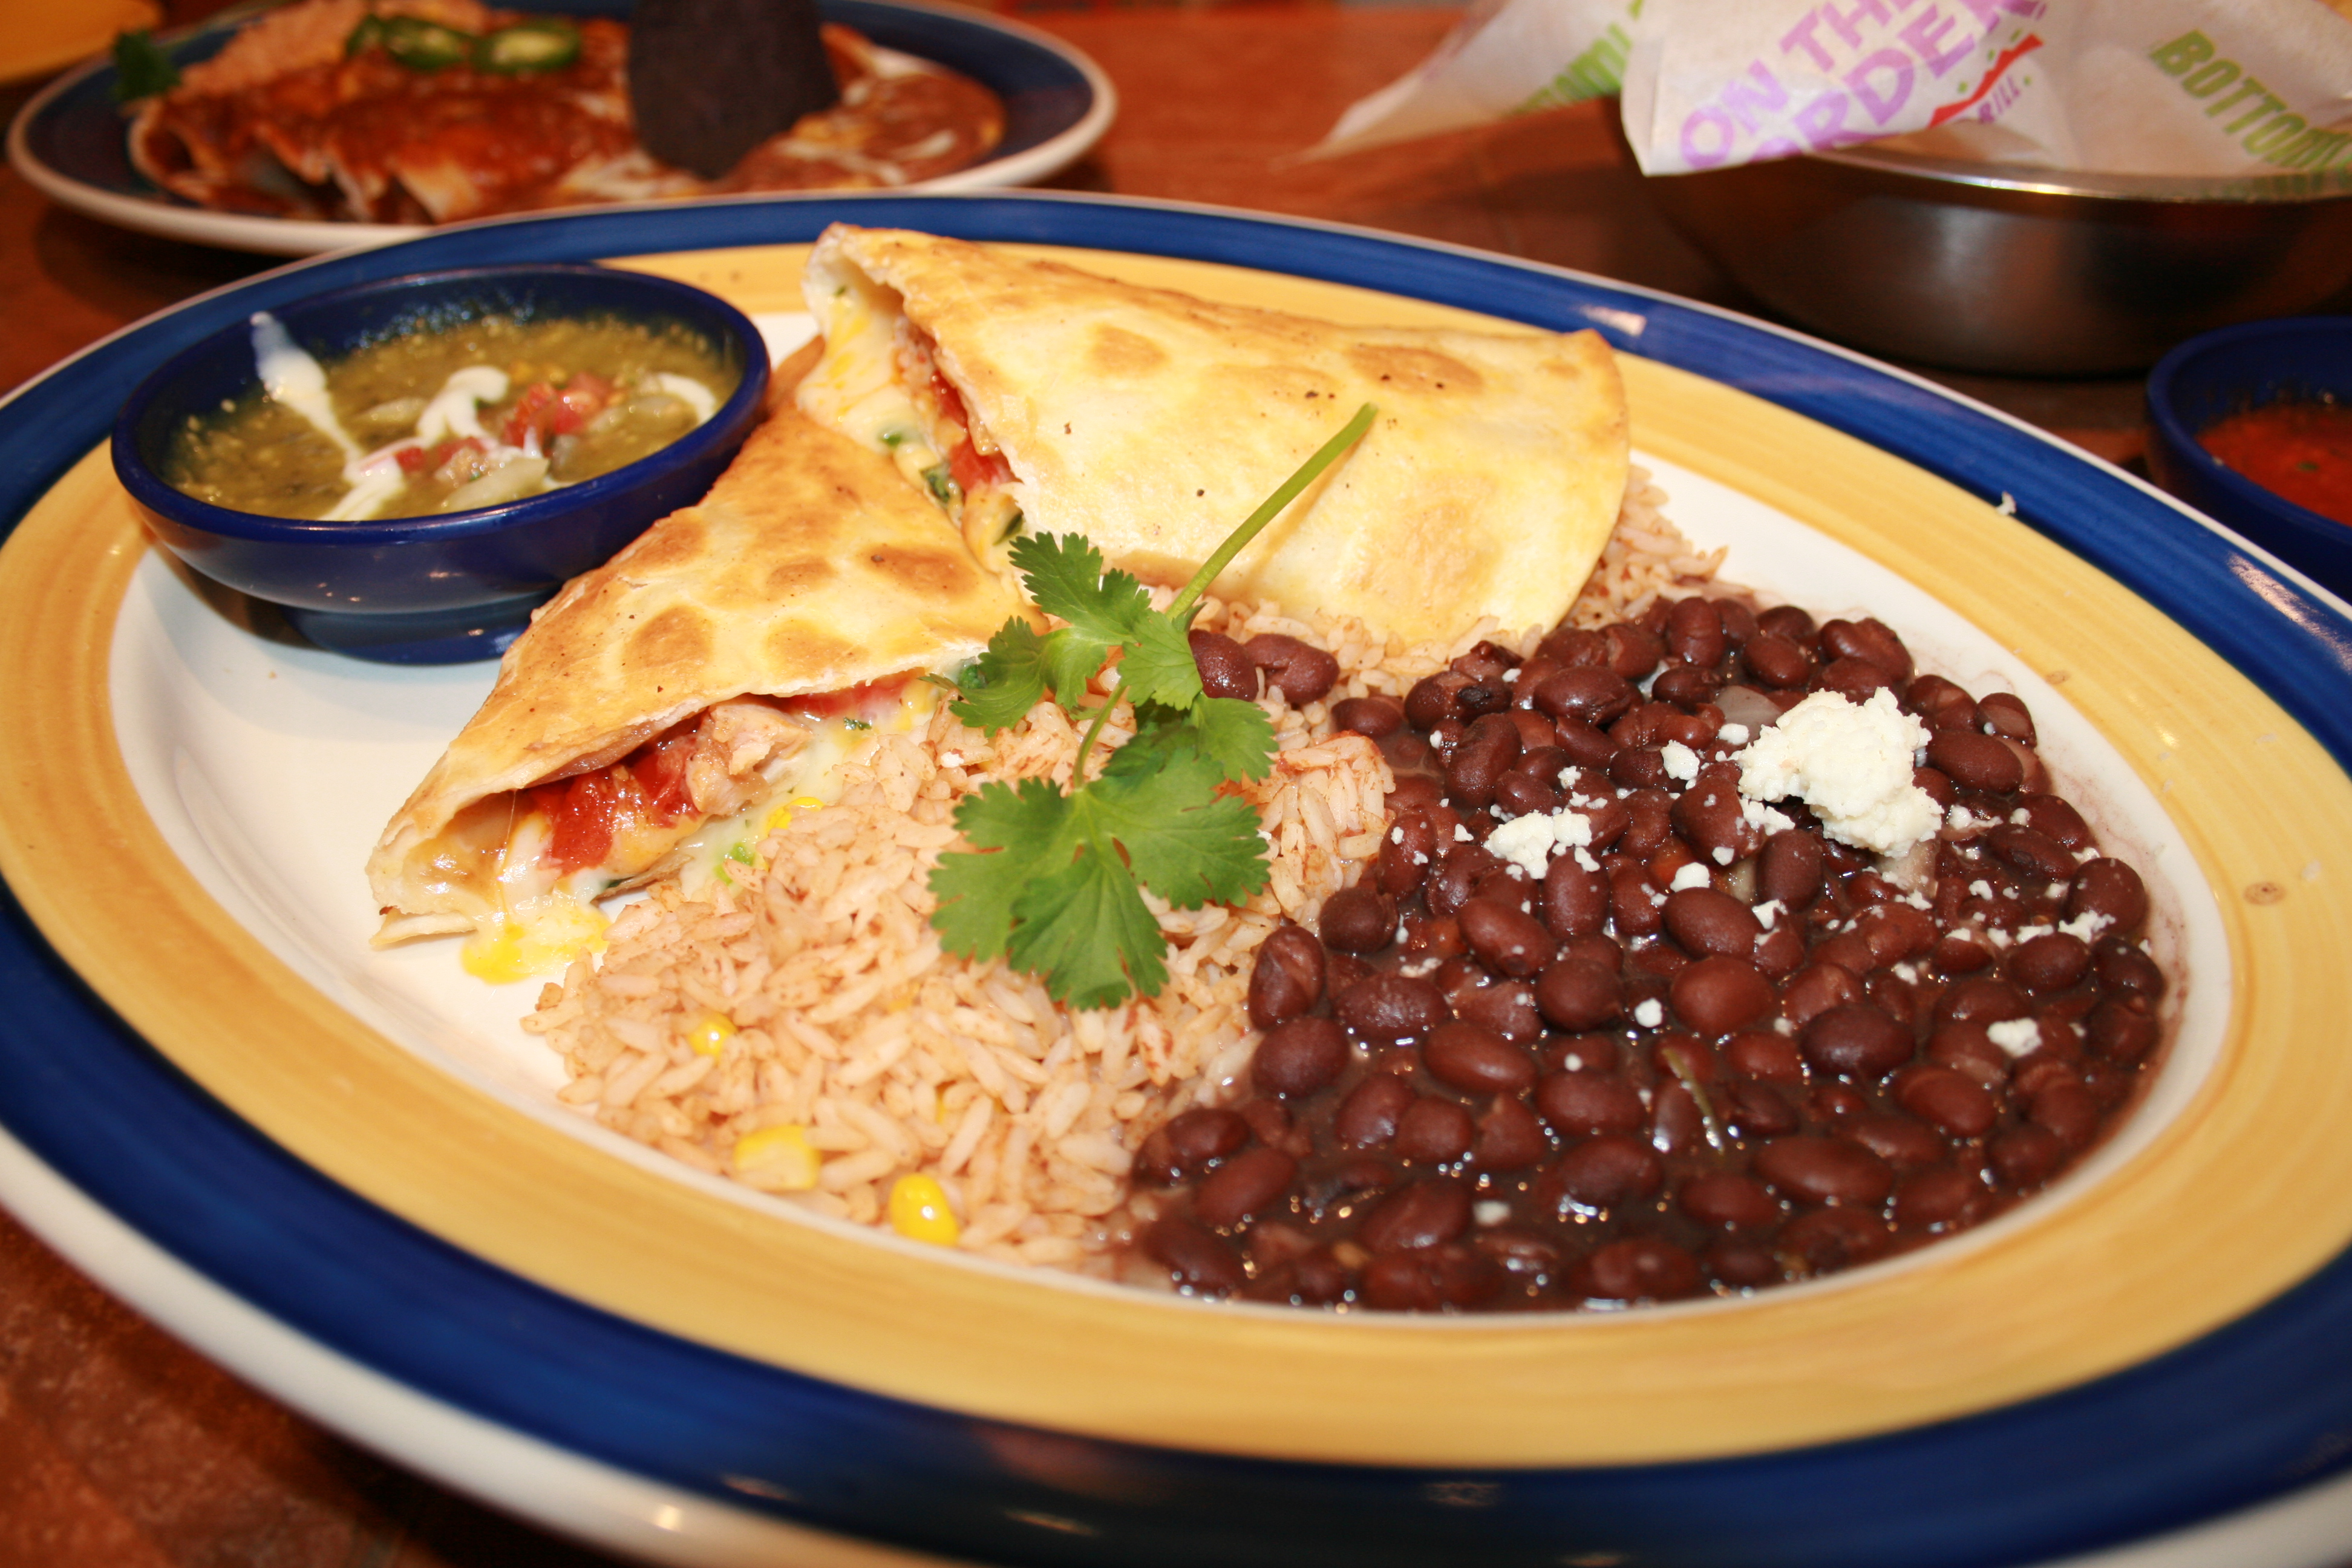 Scrumplicious food and lifestyle edmond for Mexican food